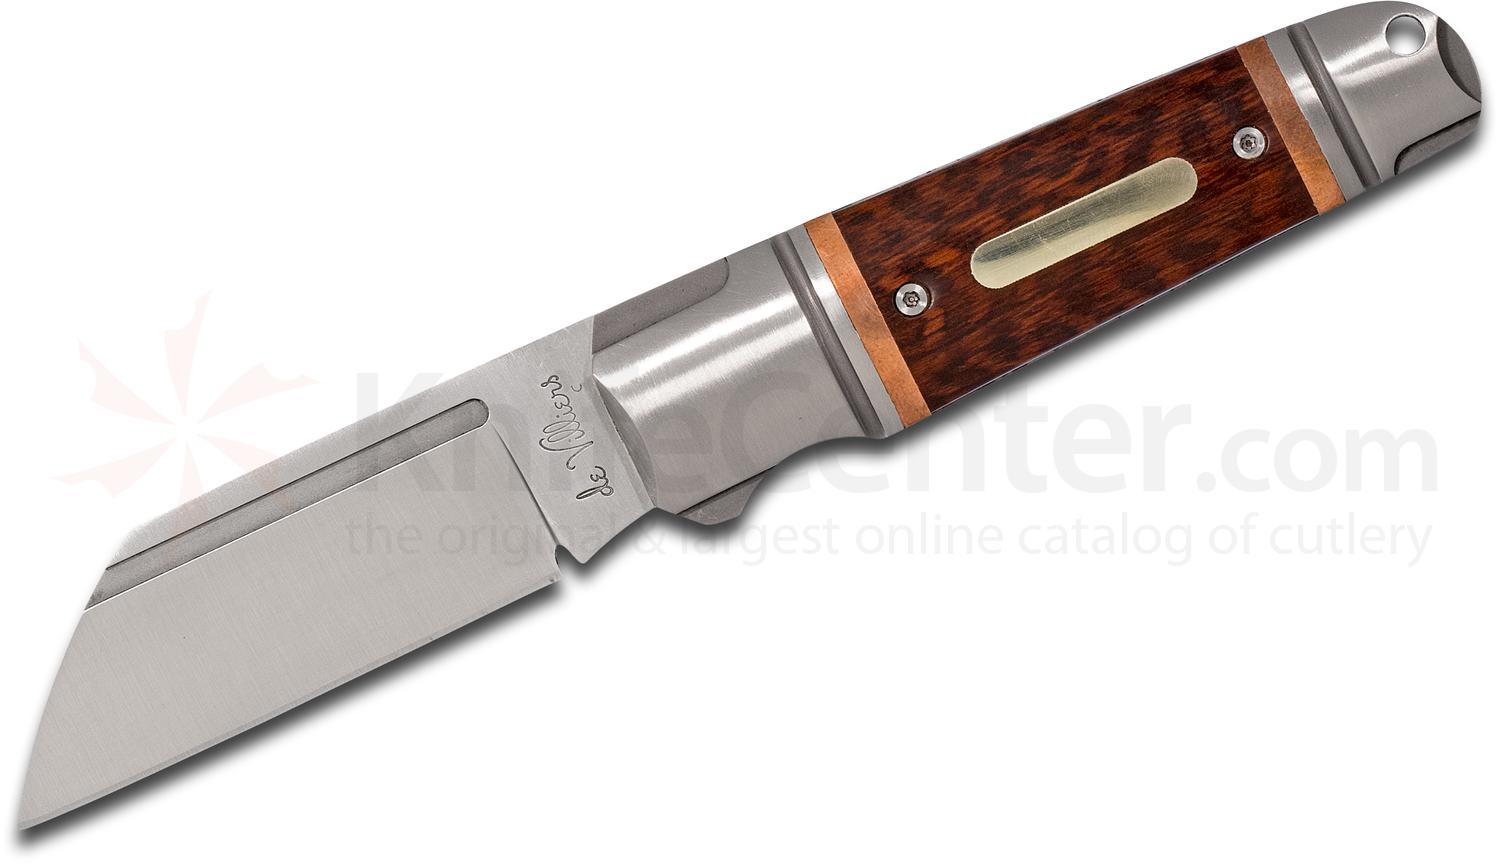 Andre De Villiers Knives Pocket Butcher Slipjoint Folding Knife 3 inch D2 Wharncliffe Blade, Stainless Steel Handles with Rosewood and Copper Inlays